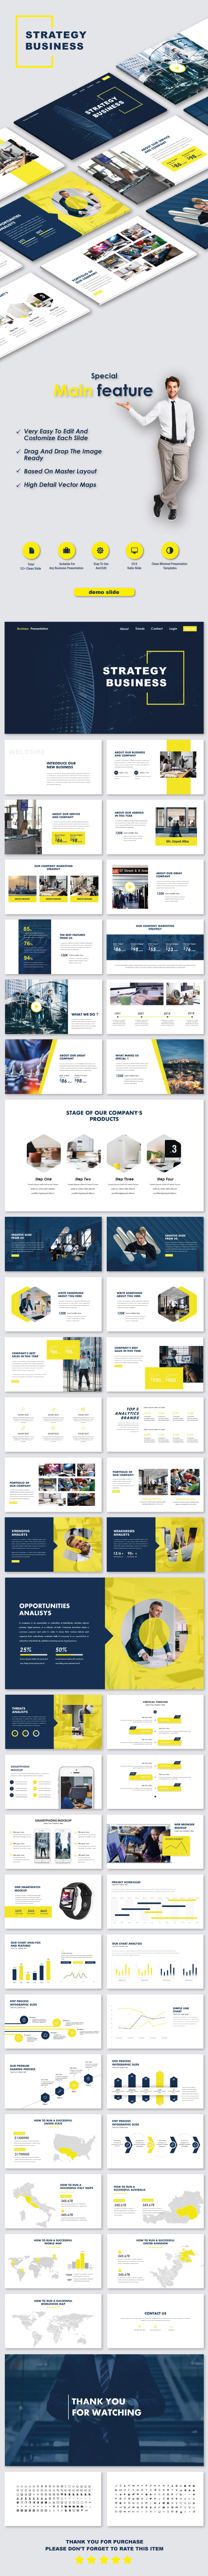 Strategy business keynote templates by creatortemplate graphicriver strategy business keynote templates business keynote templates friedricerecipe Image collections